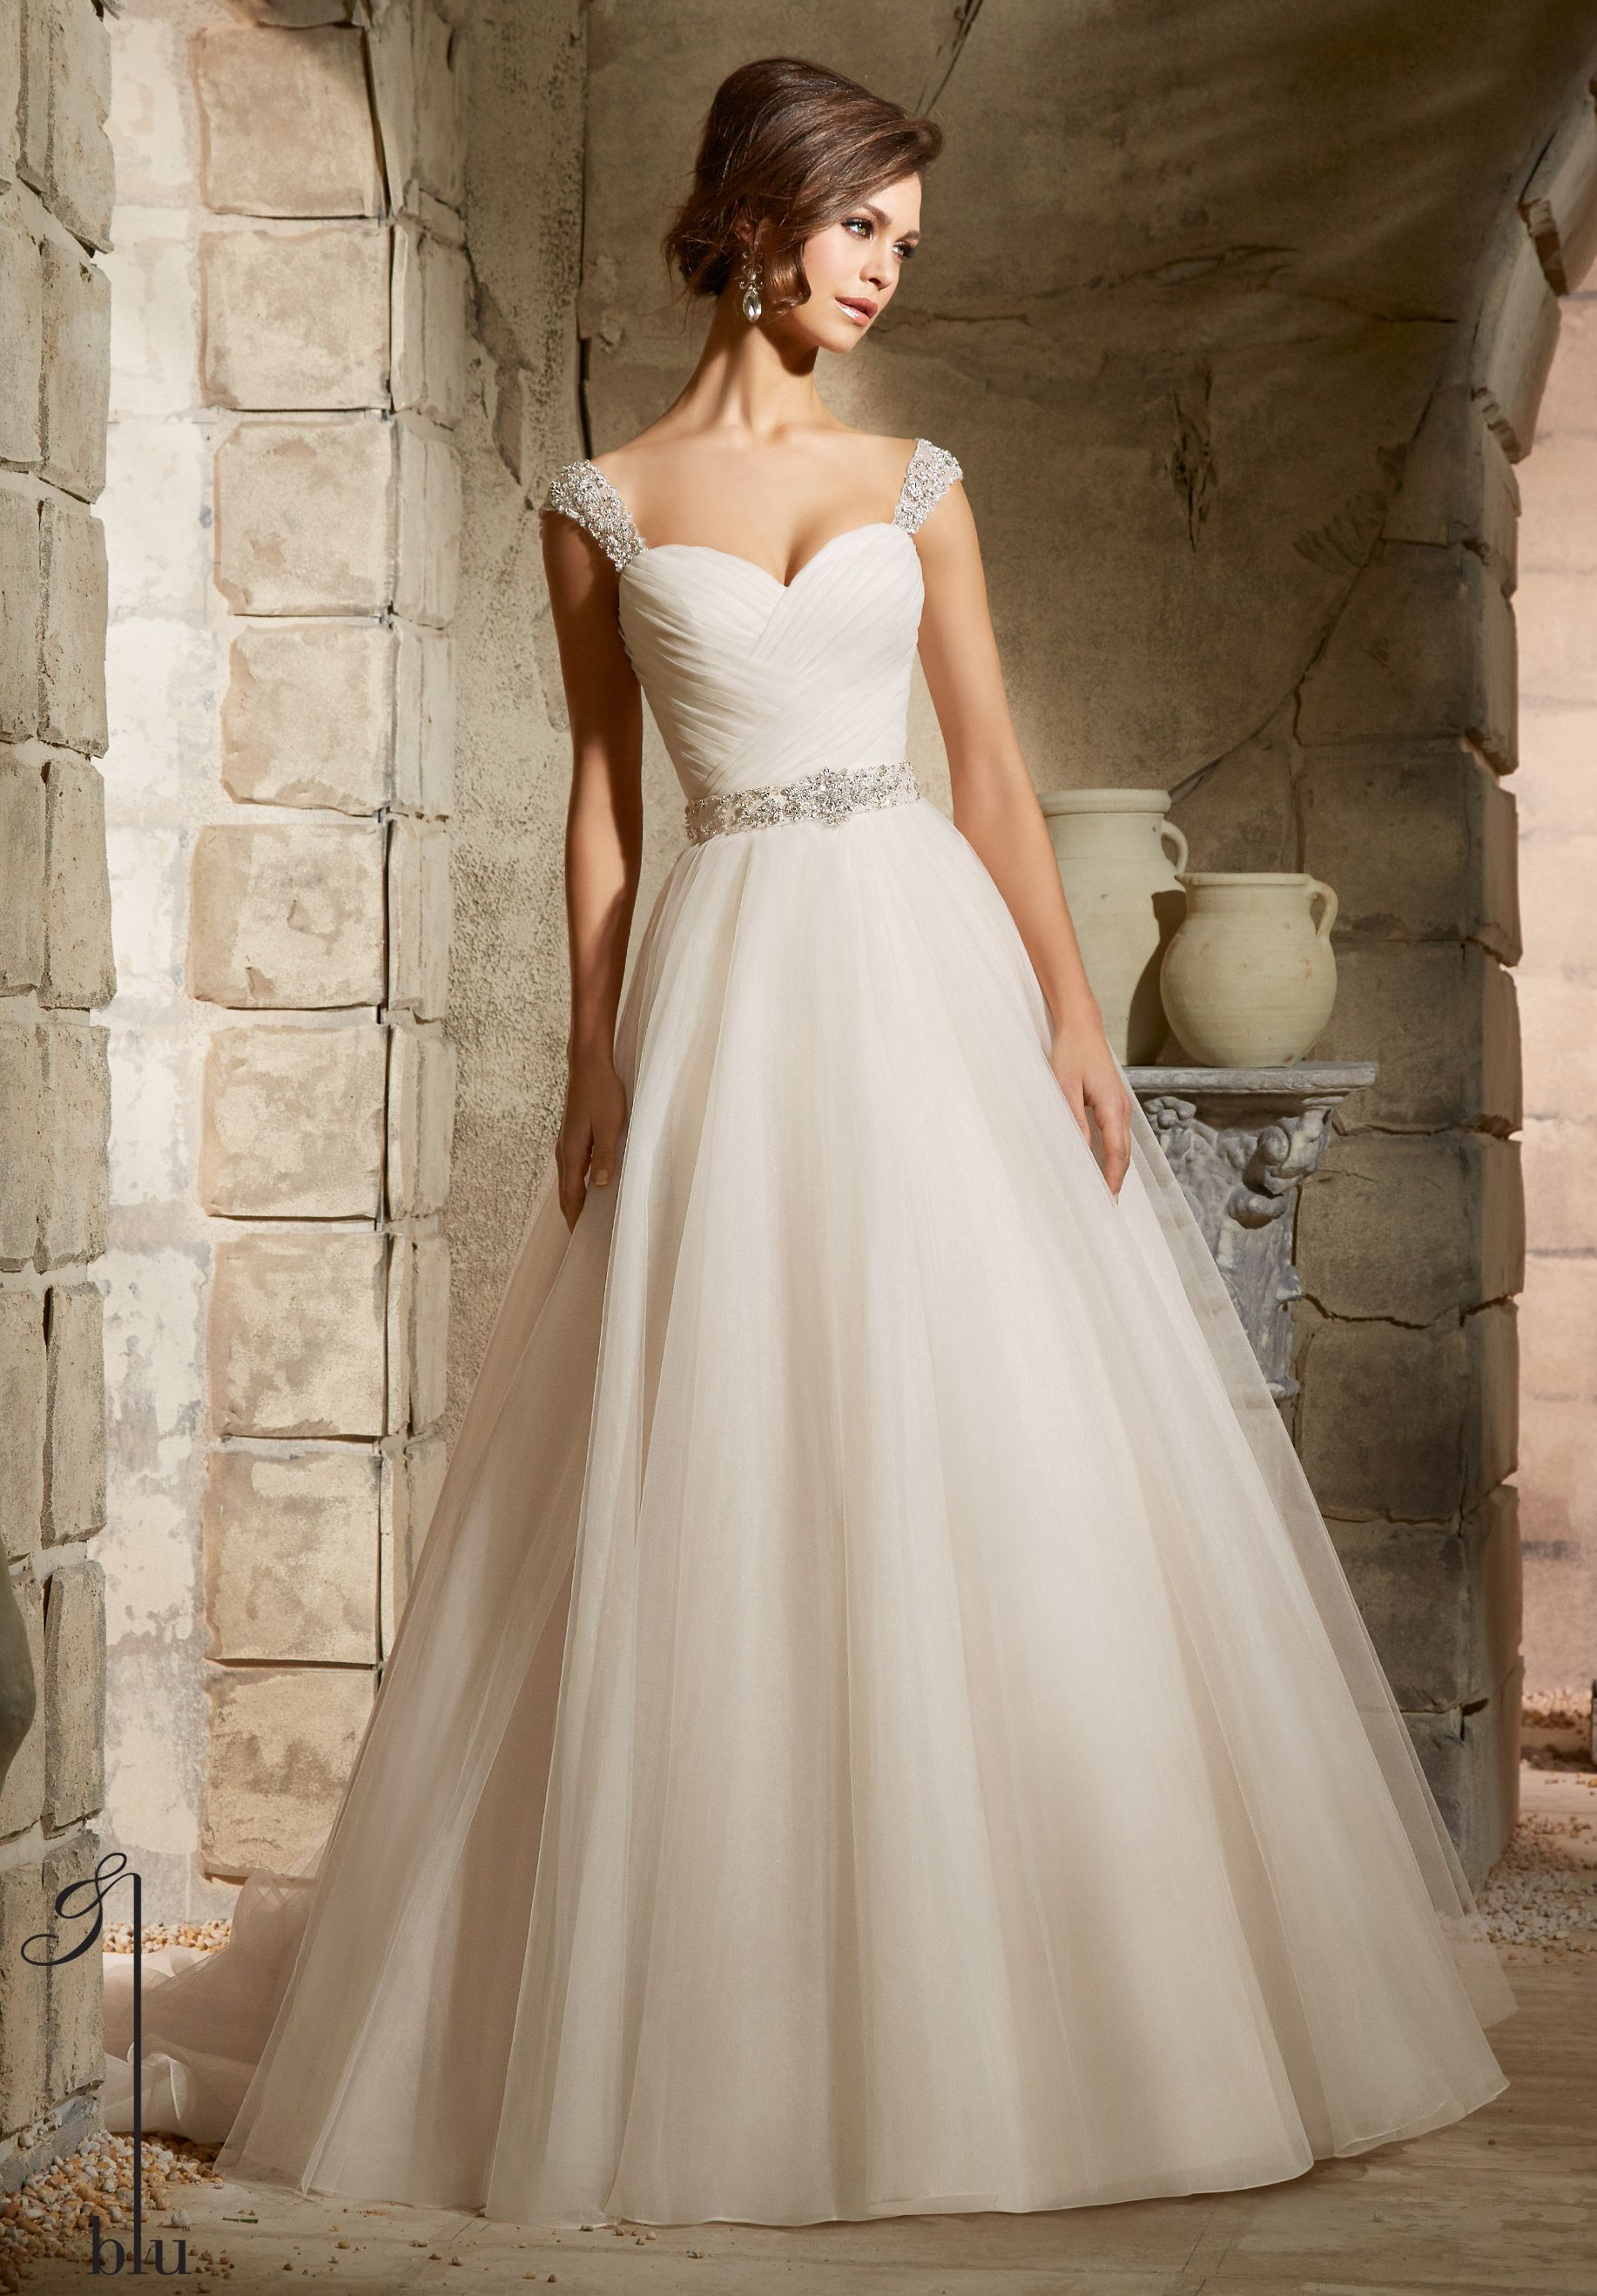 Wedding gowns by blu featuring asymmetrically draped bodice on a wedding gowns by blu featuring asymmetrically draped bodice on a tulle ball gown perfect for a ombrellifo Images